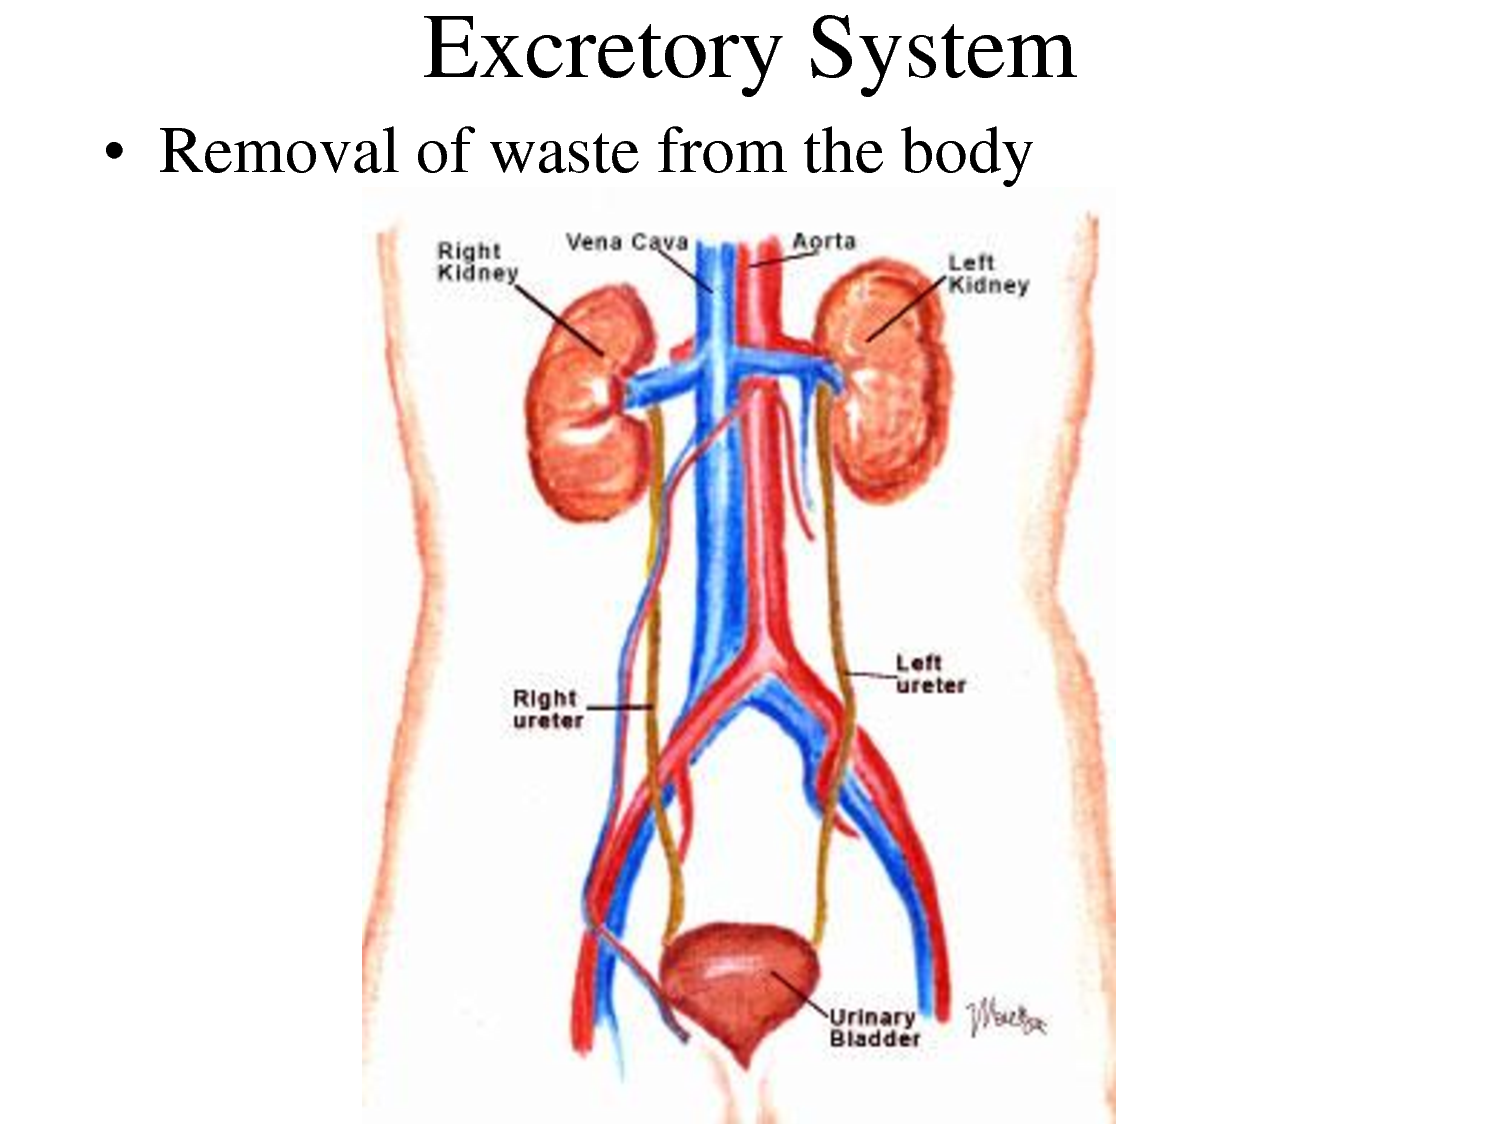 Digestive System also Physiology Urinary System further Methods Of Imaging Of The Urinary Tract Using Contrast as well Kidney Failure Treatment Ayurveda additionally Major Kidney Charity Buys Liver Bladder. on excretory system steps